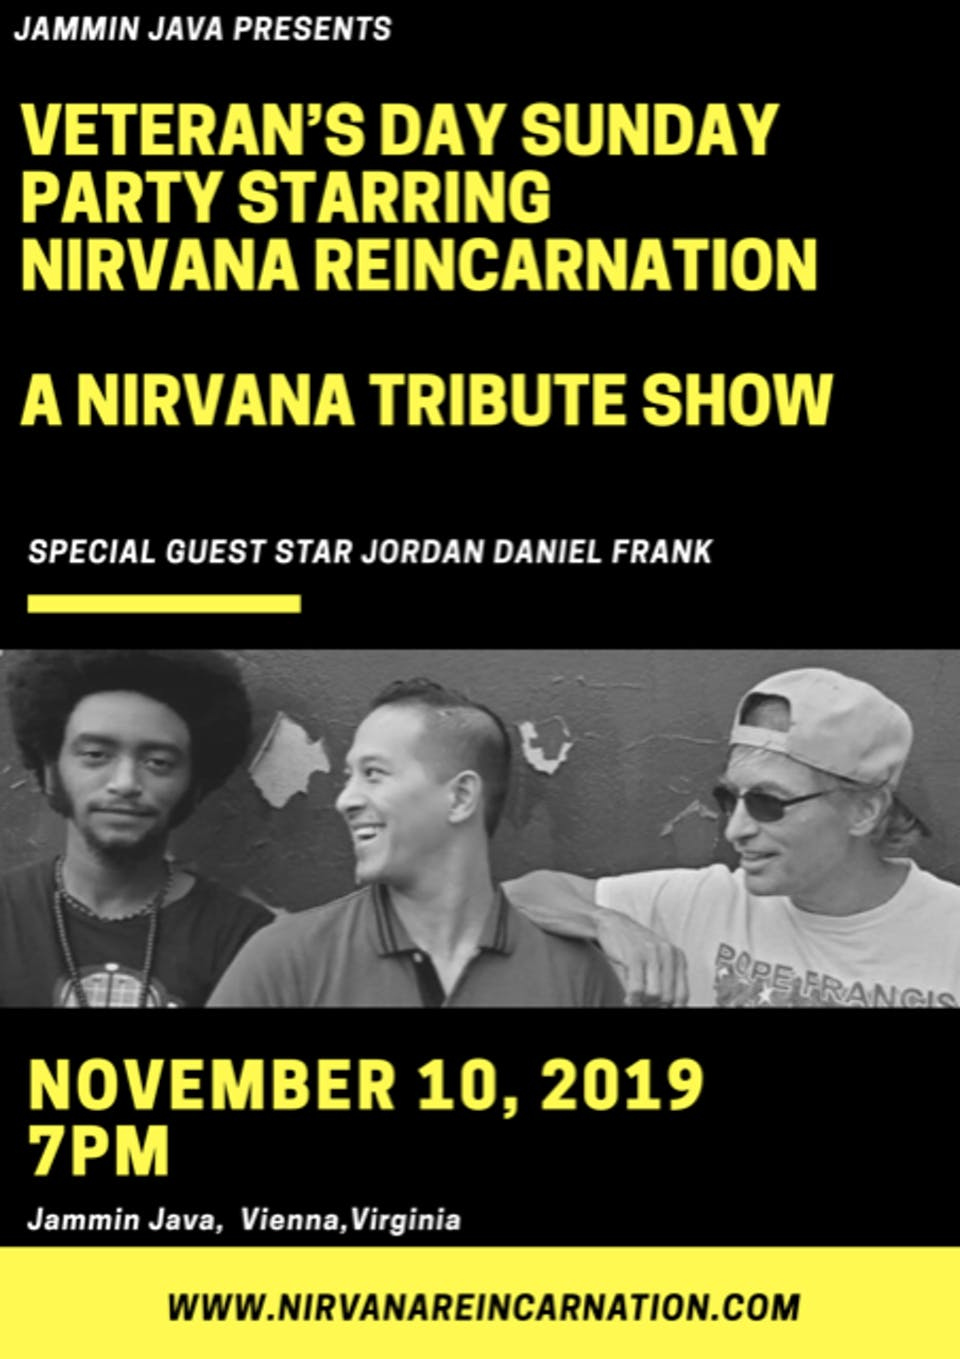 Veteran's Day Sunday Party w/ Nirvana Reincarnation + Jordan Daniel Frank